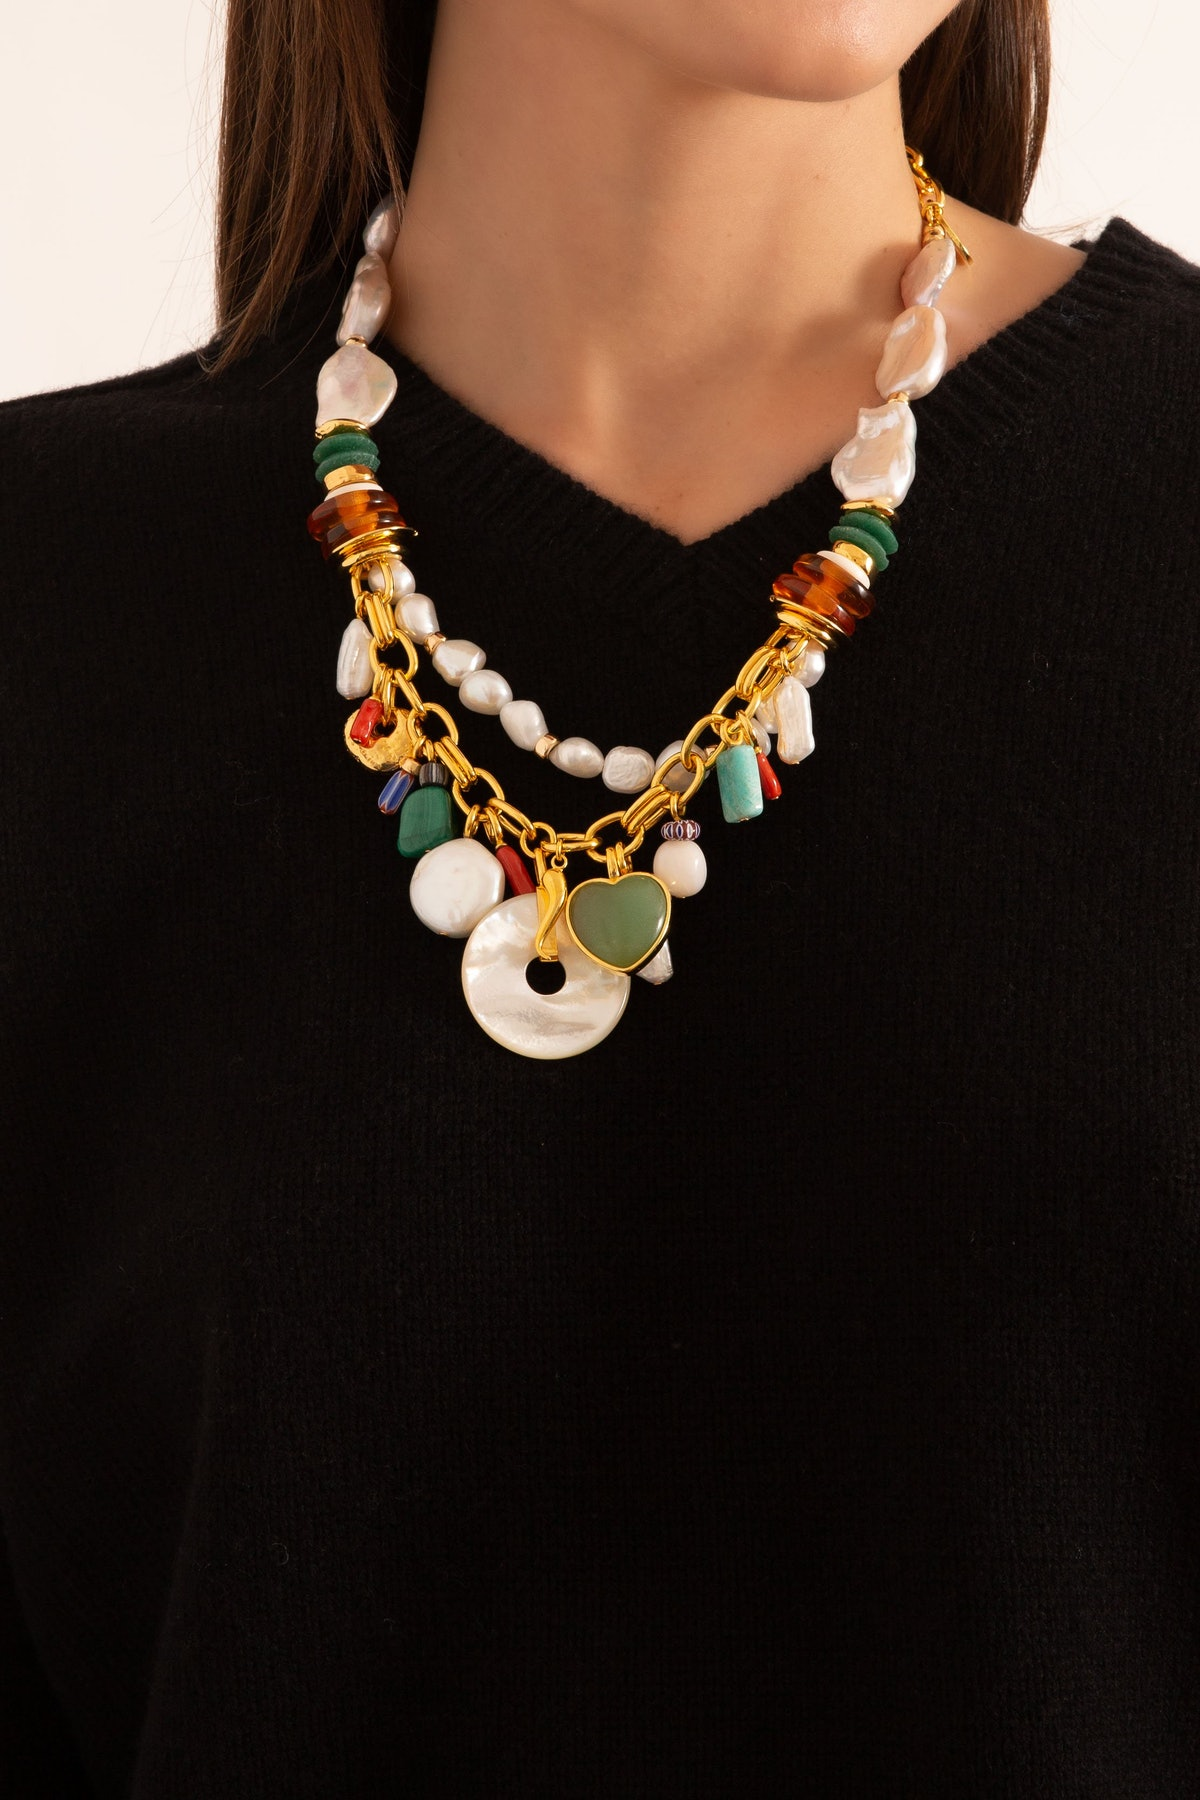 Vista Necklace in Multi: additional image